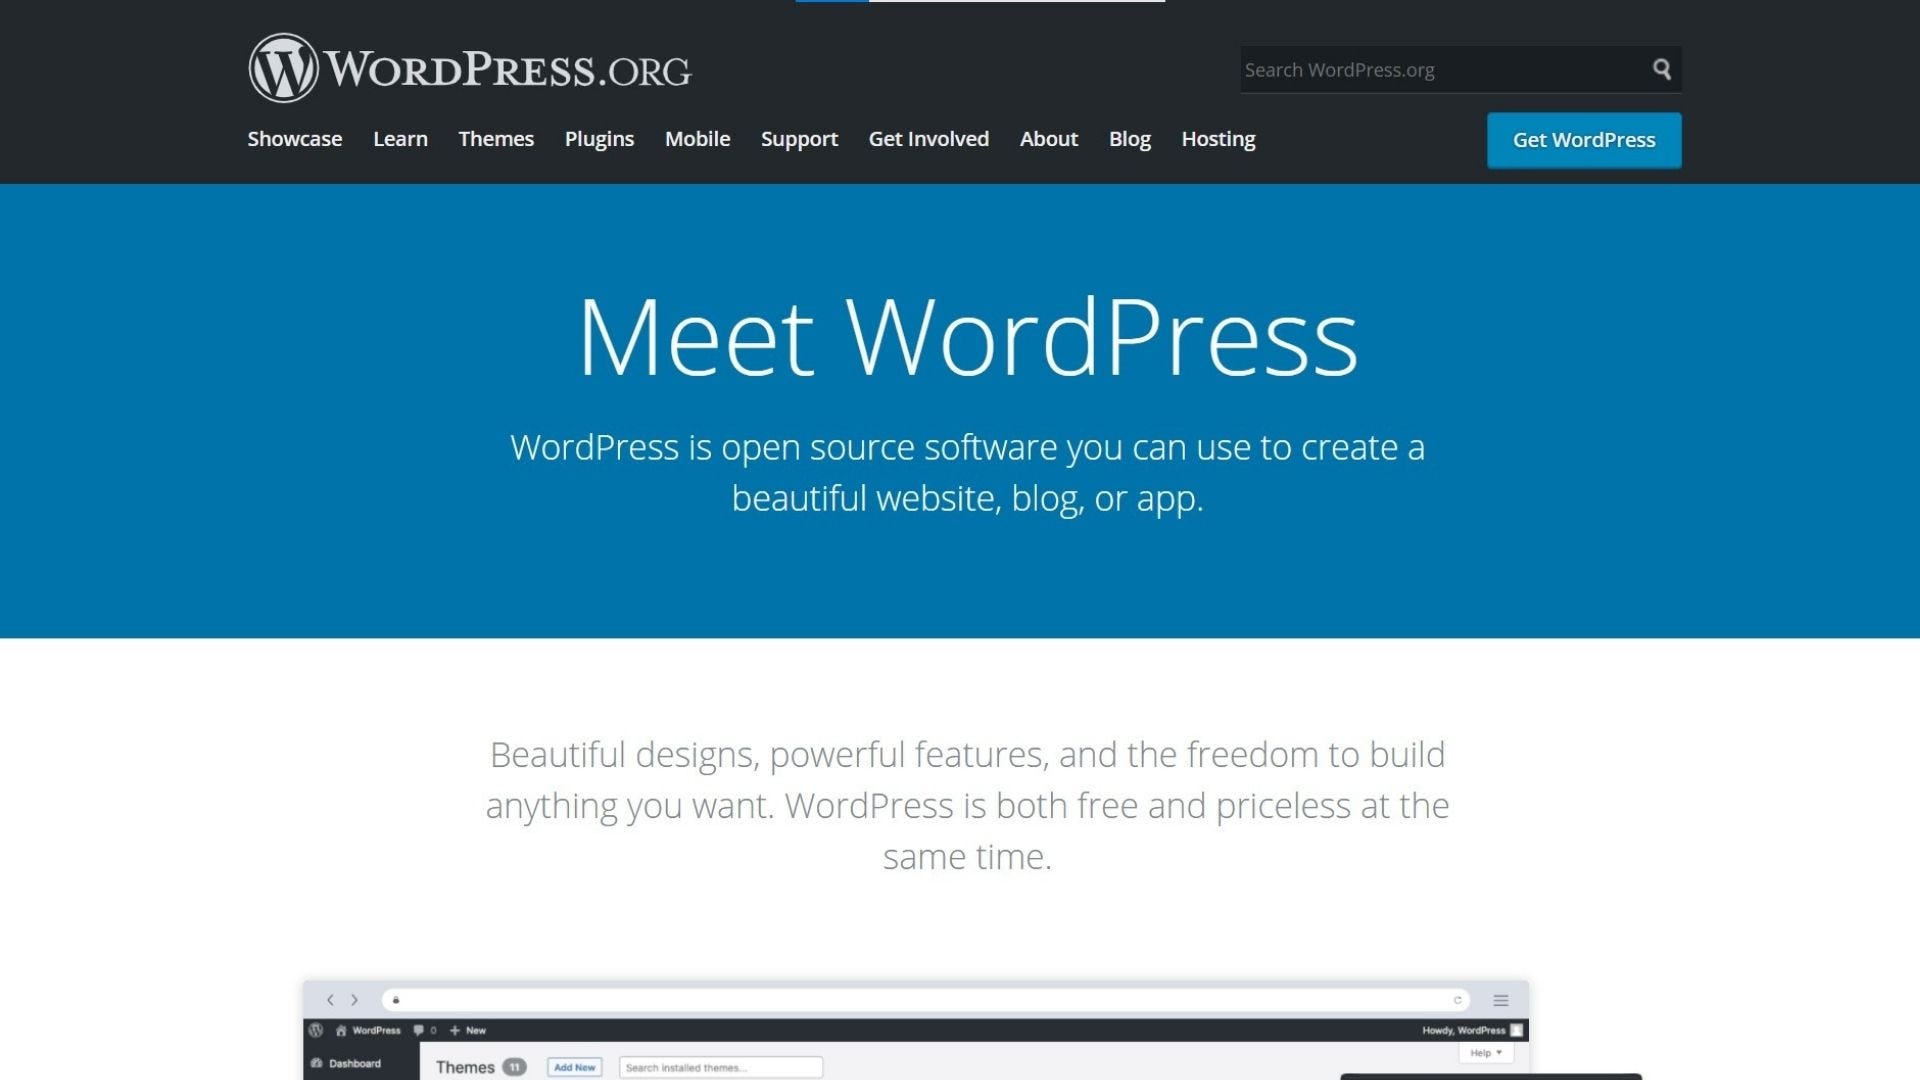 wordpress.org software home page